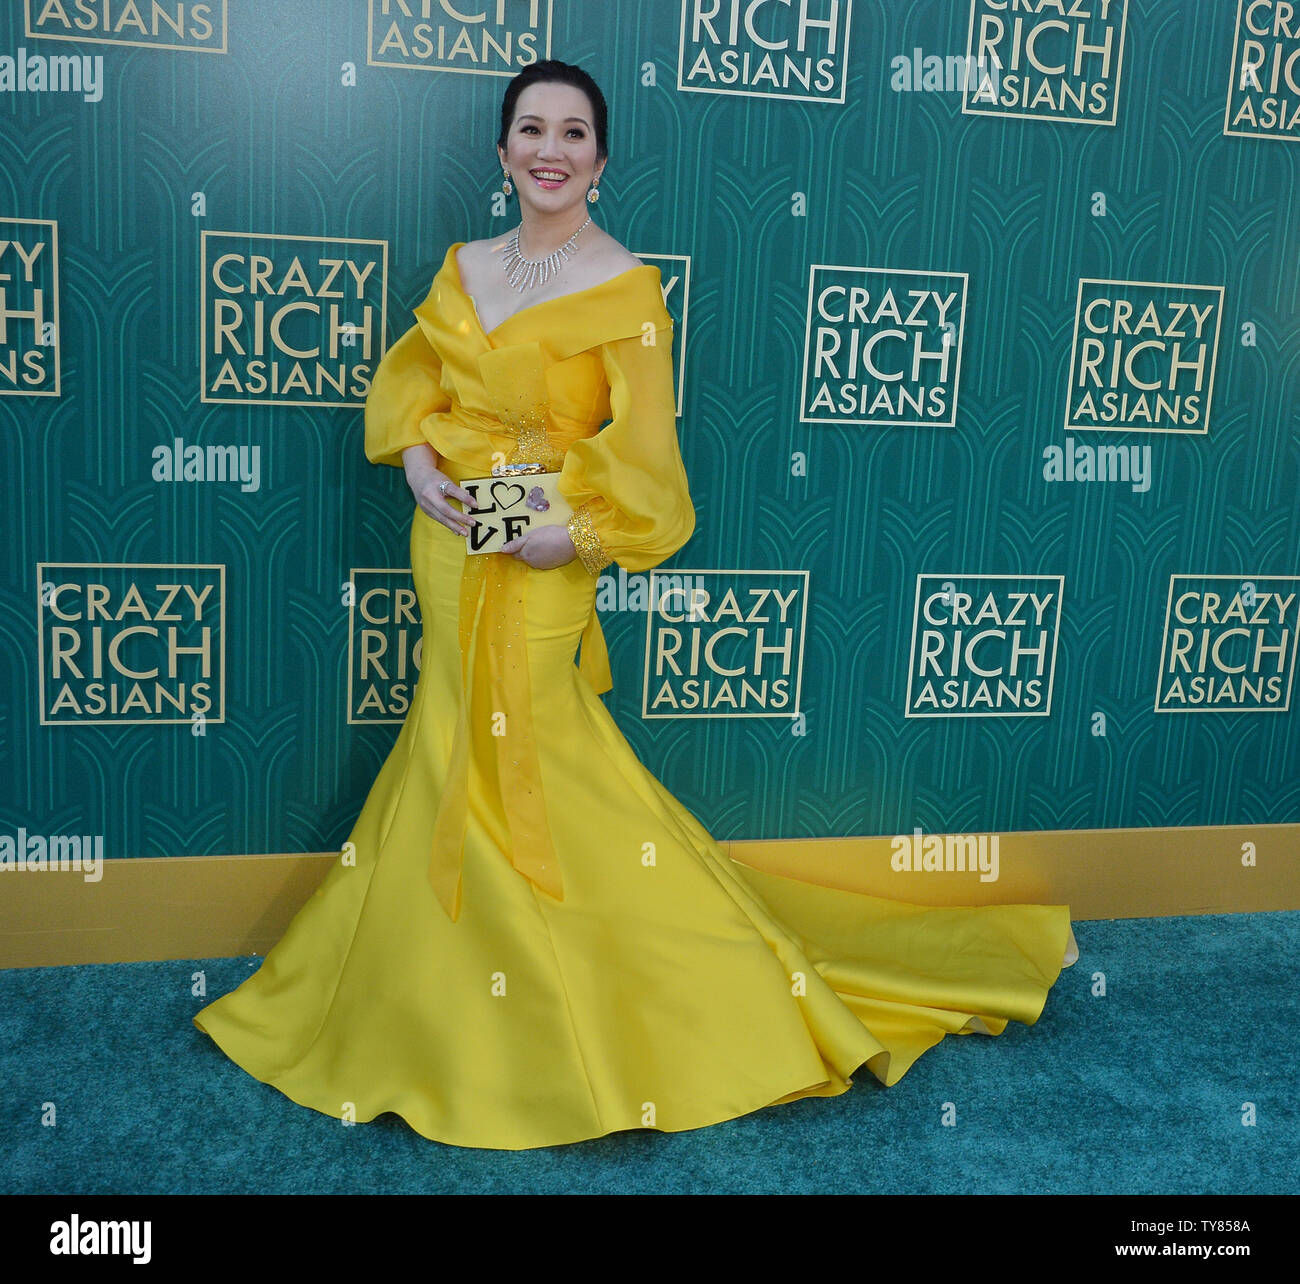 Cast member Kris Aquino attends the premiere of the motion picture comedy 'Crazy Rich Asians' at the TCL Chinese Theatre in the Hollywood section of Los Angeles on July 7, 2018. The story follows Rachel Chu (Wu), an American-born Chinese economics professor, who travels to her boyfriend Nick's (Henry Golding) hometown of Singapore for his best friend's wedding. Before long, his secret is out: Nick is from a family that is impossibly wealthy, he's perhaps the most eligible bachelor in Asia, and every single woman in his ultra-rarefied social class is incredibly jealous of Rachel and wants to br - Stock Image